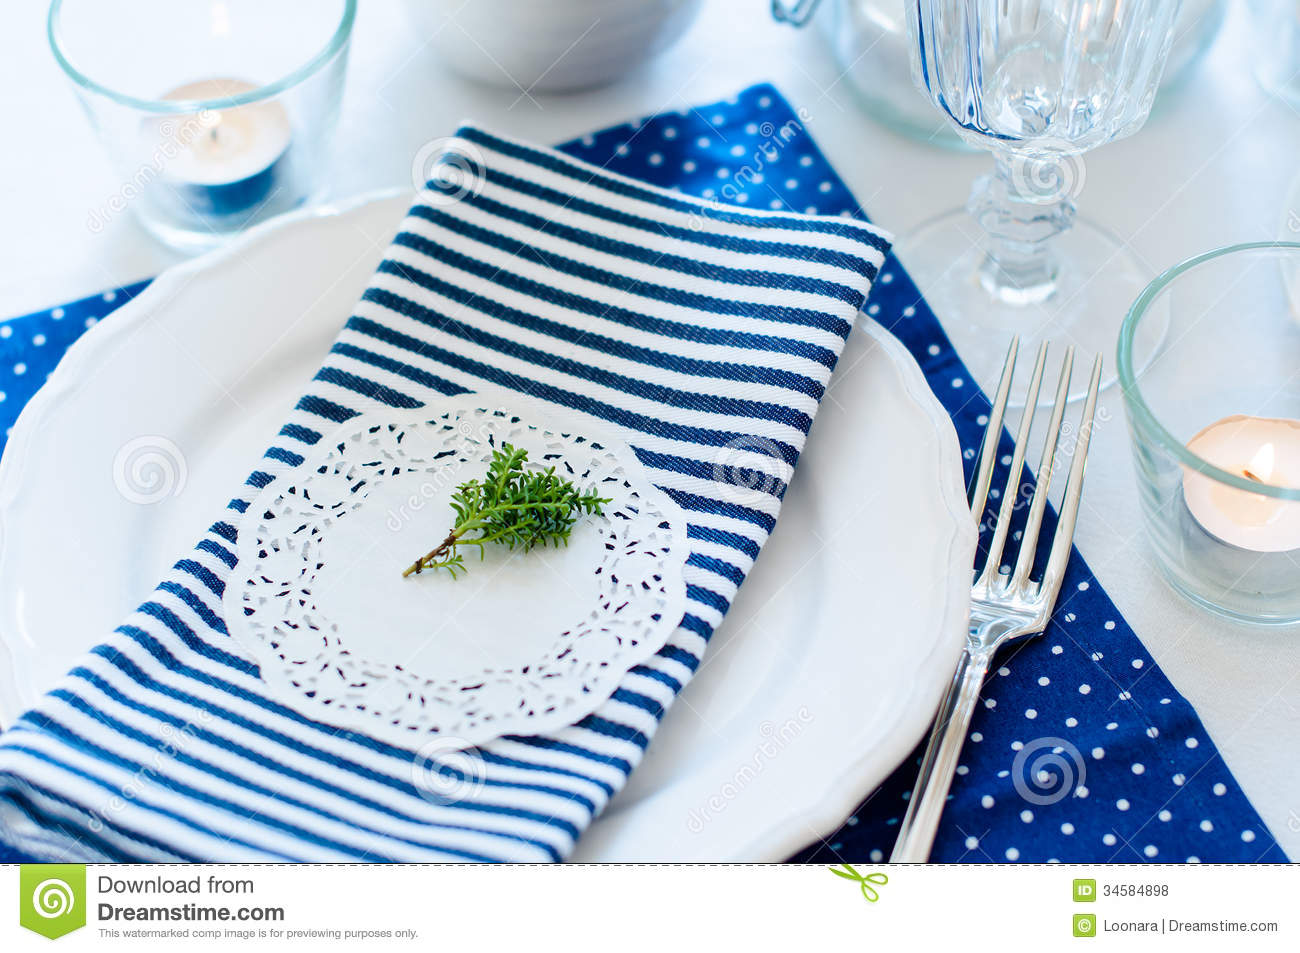 Table Setting In Navy Blue Tones Royalty Free Stock Photos  : table setting navy blue tones breakfast napkins cups plates white background 34584898 from www.dreamstime.com size 1300 x 953 jpeg 183kB